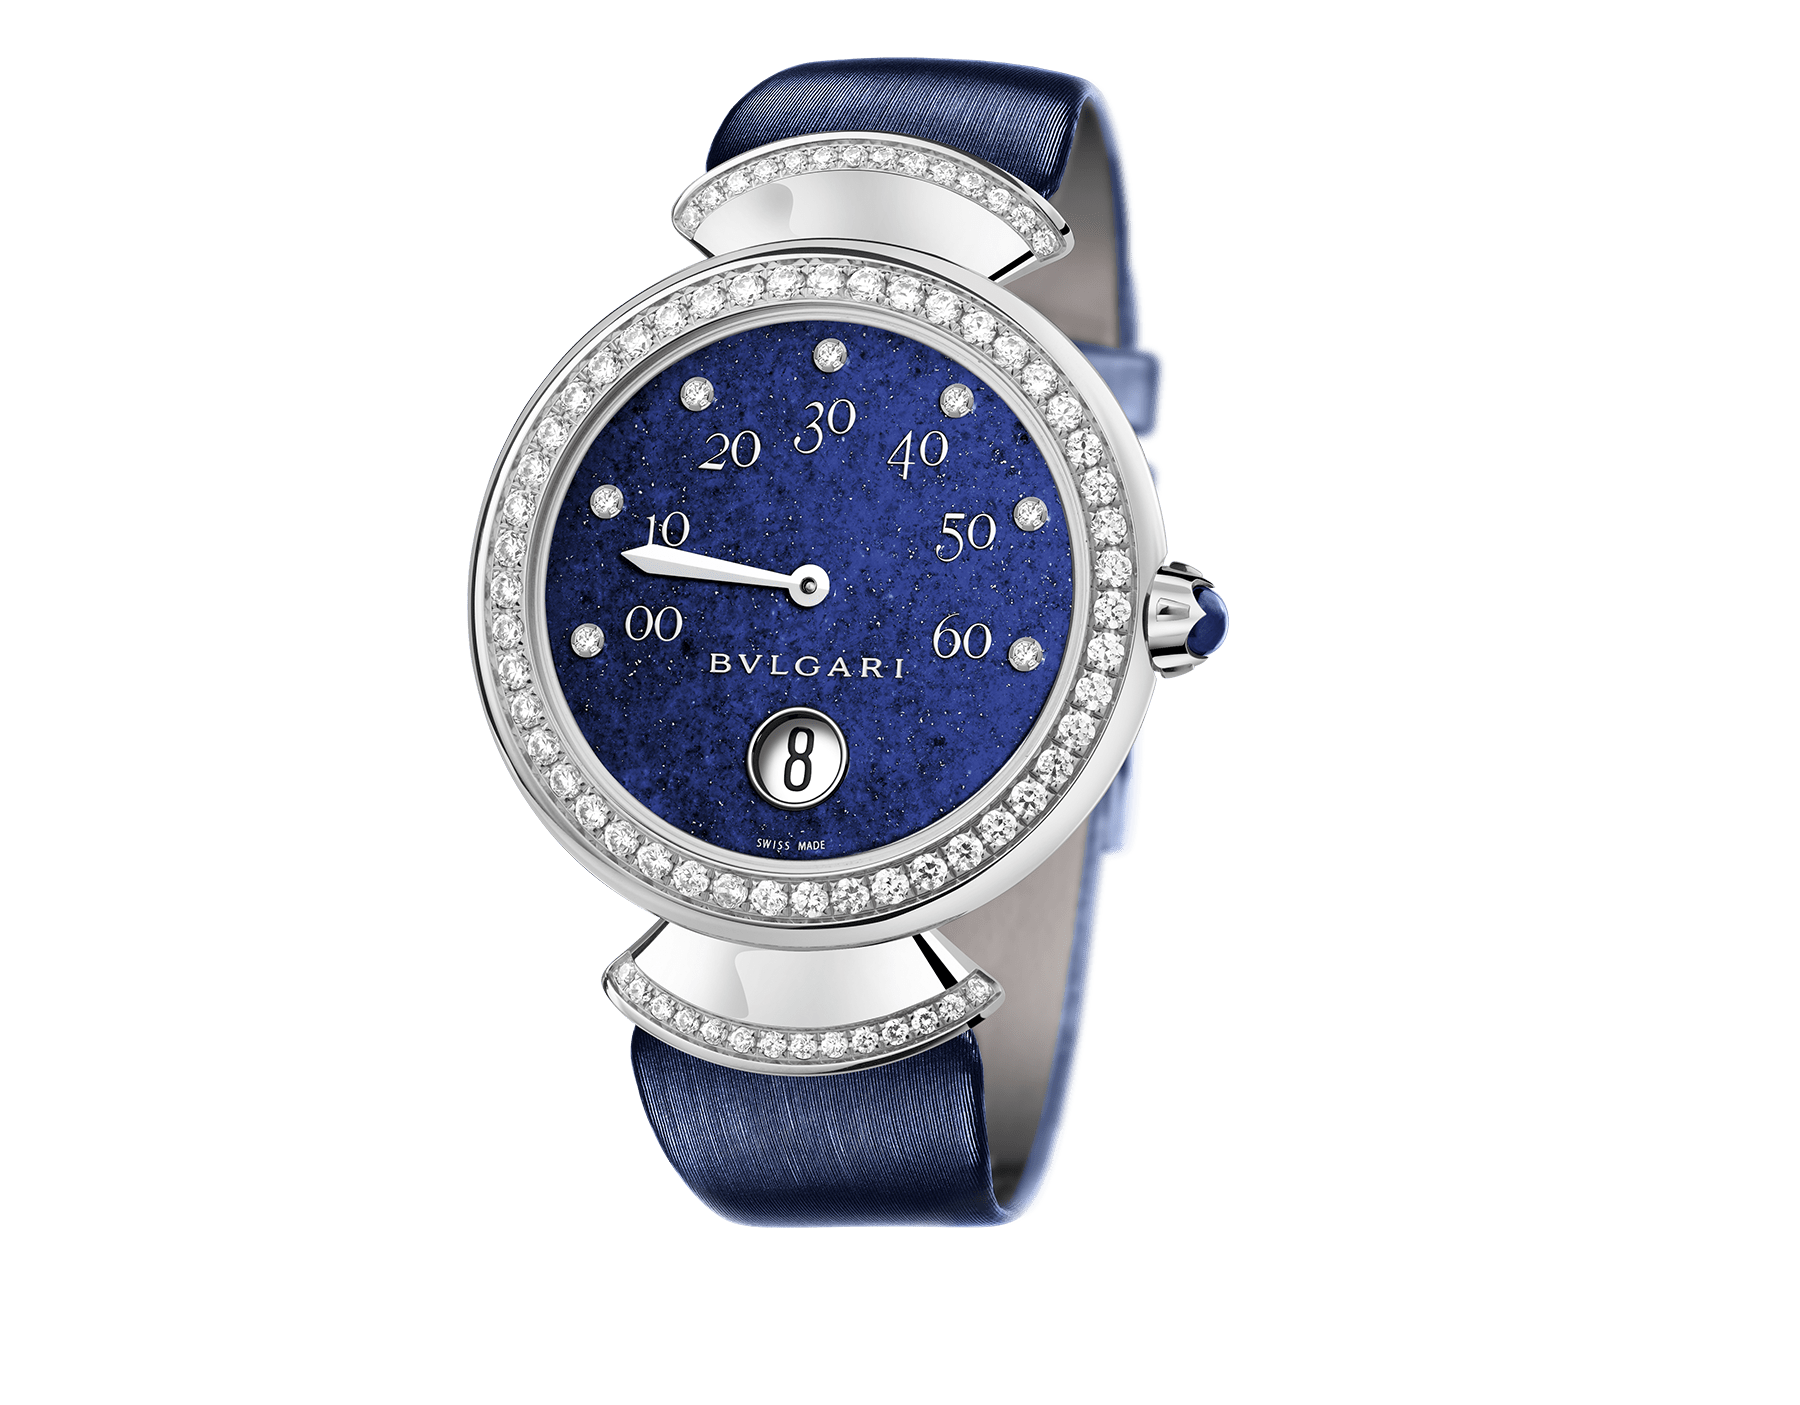 DIVAS' DREAM watch with mechanical manufacture movement, jumping hours, retrograde minutes (180°) and automatic winding. 18 kt white gold case set with brilliant-cut diamonds, lapis lazuli dial, diamond indexes and blue satin bracelet 102544 image 1